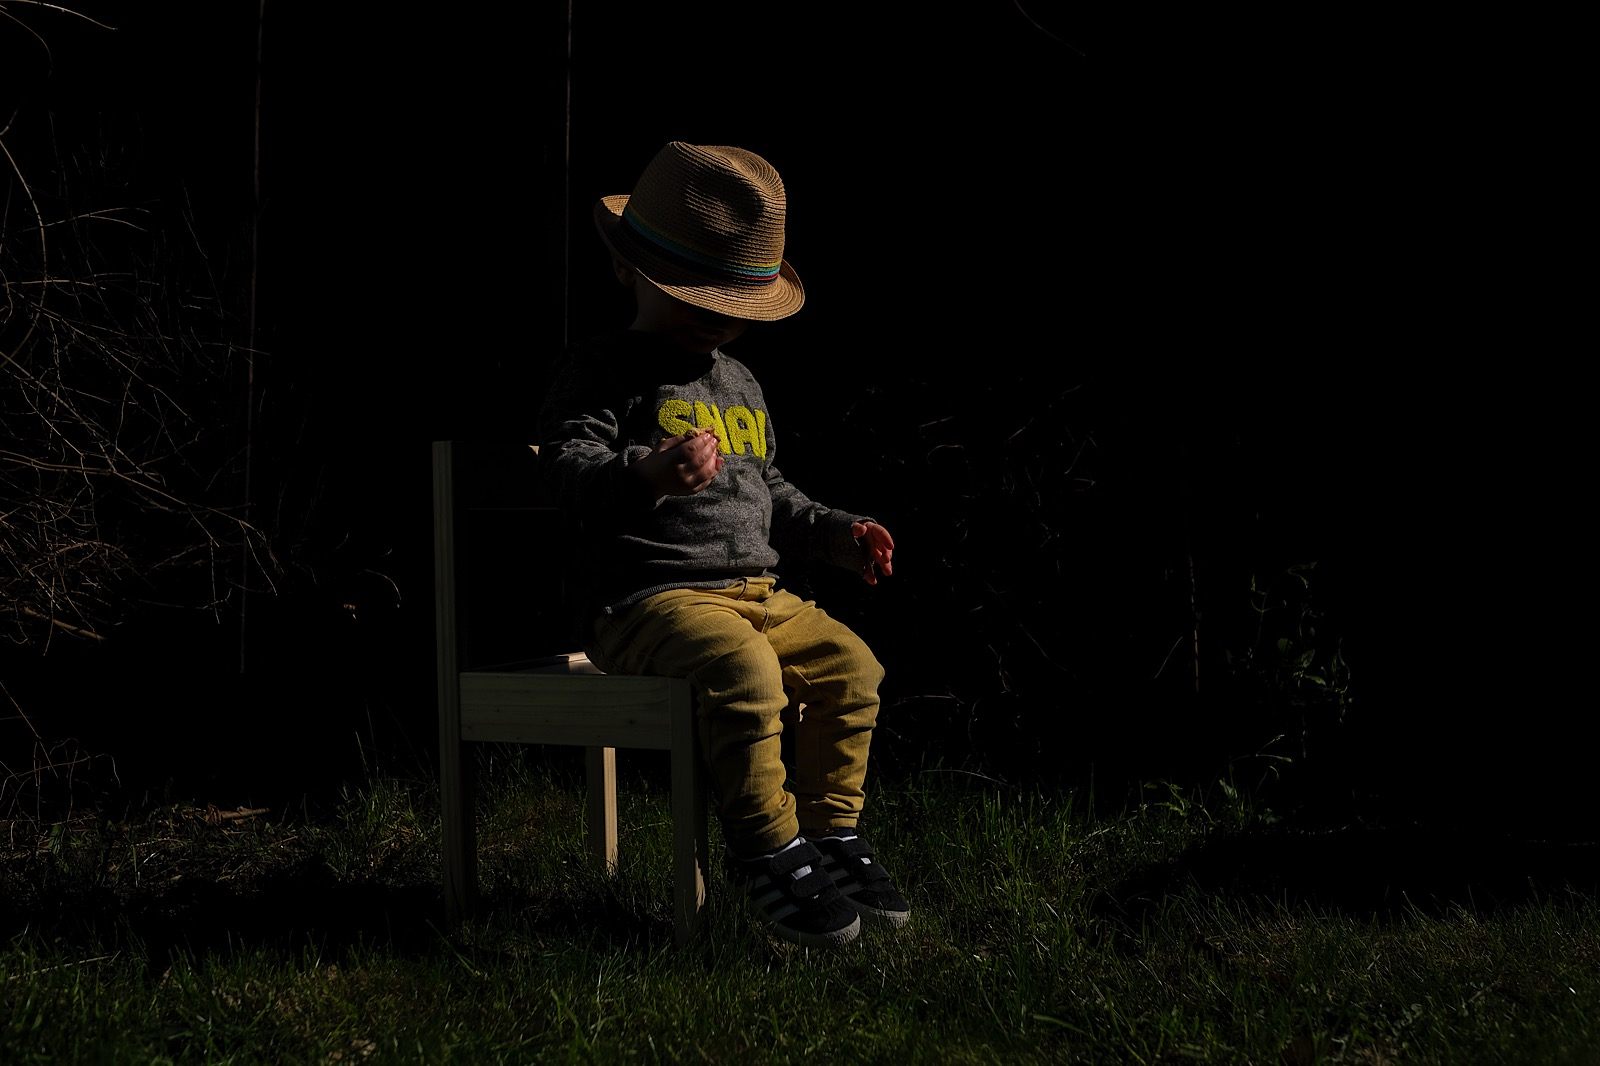 little boy sat in hat on small chair in garden during pandemic